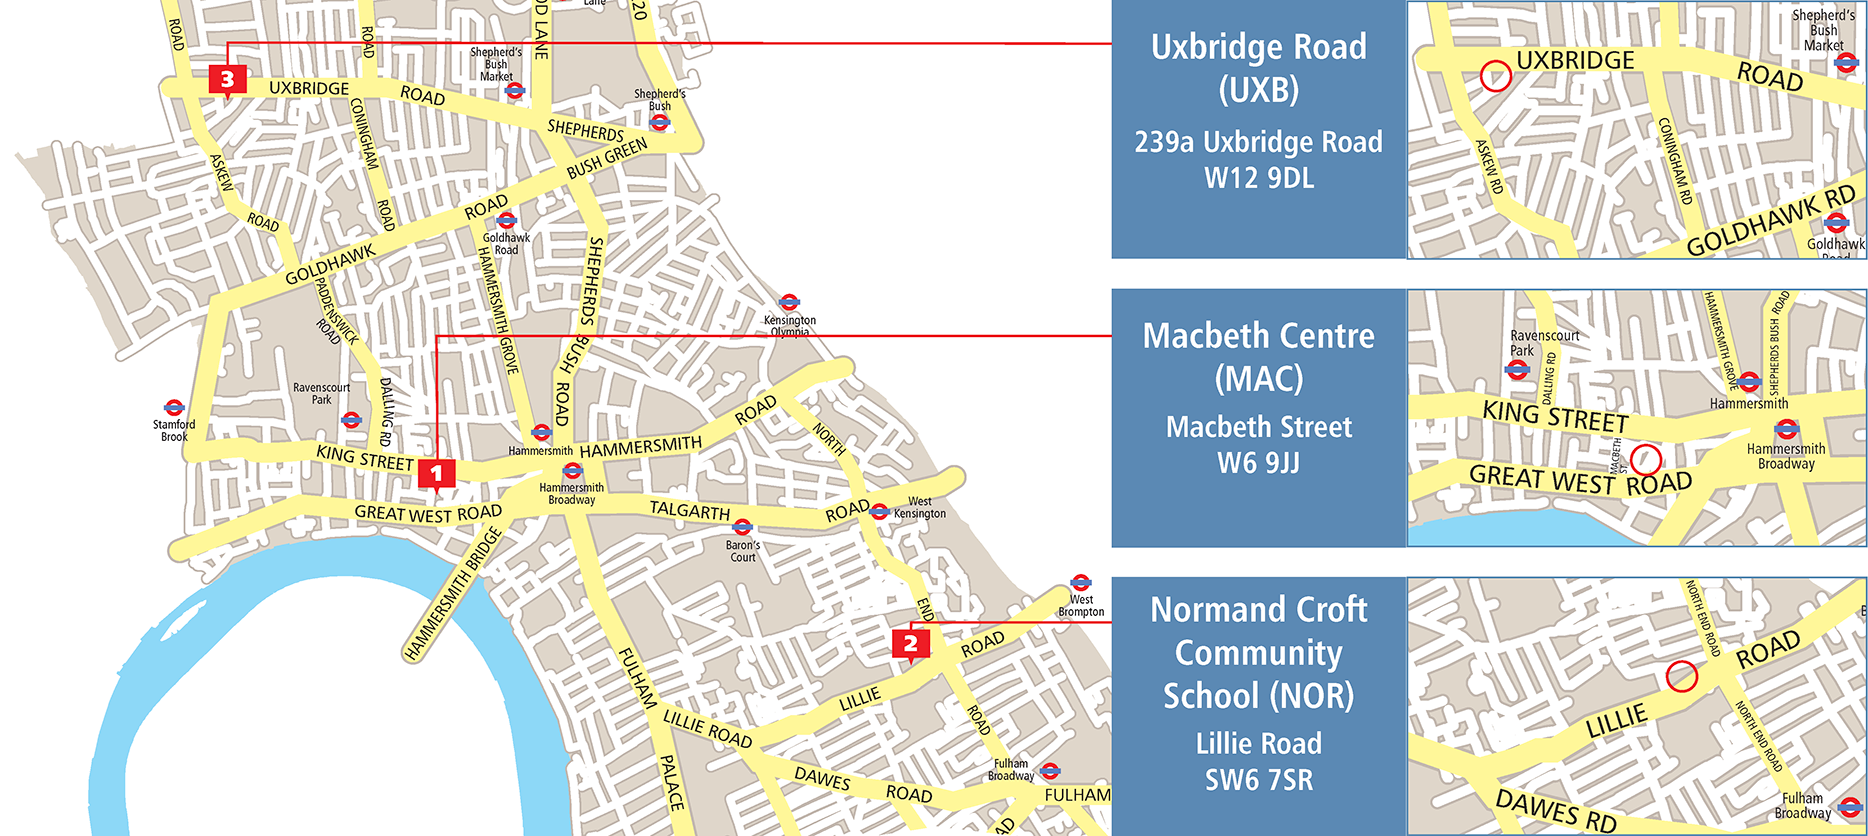 Larger map with inset maps of Uxbridge Rd, Macbeth and Normand Croft venues